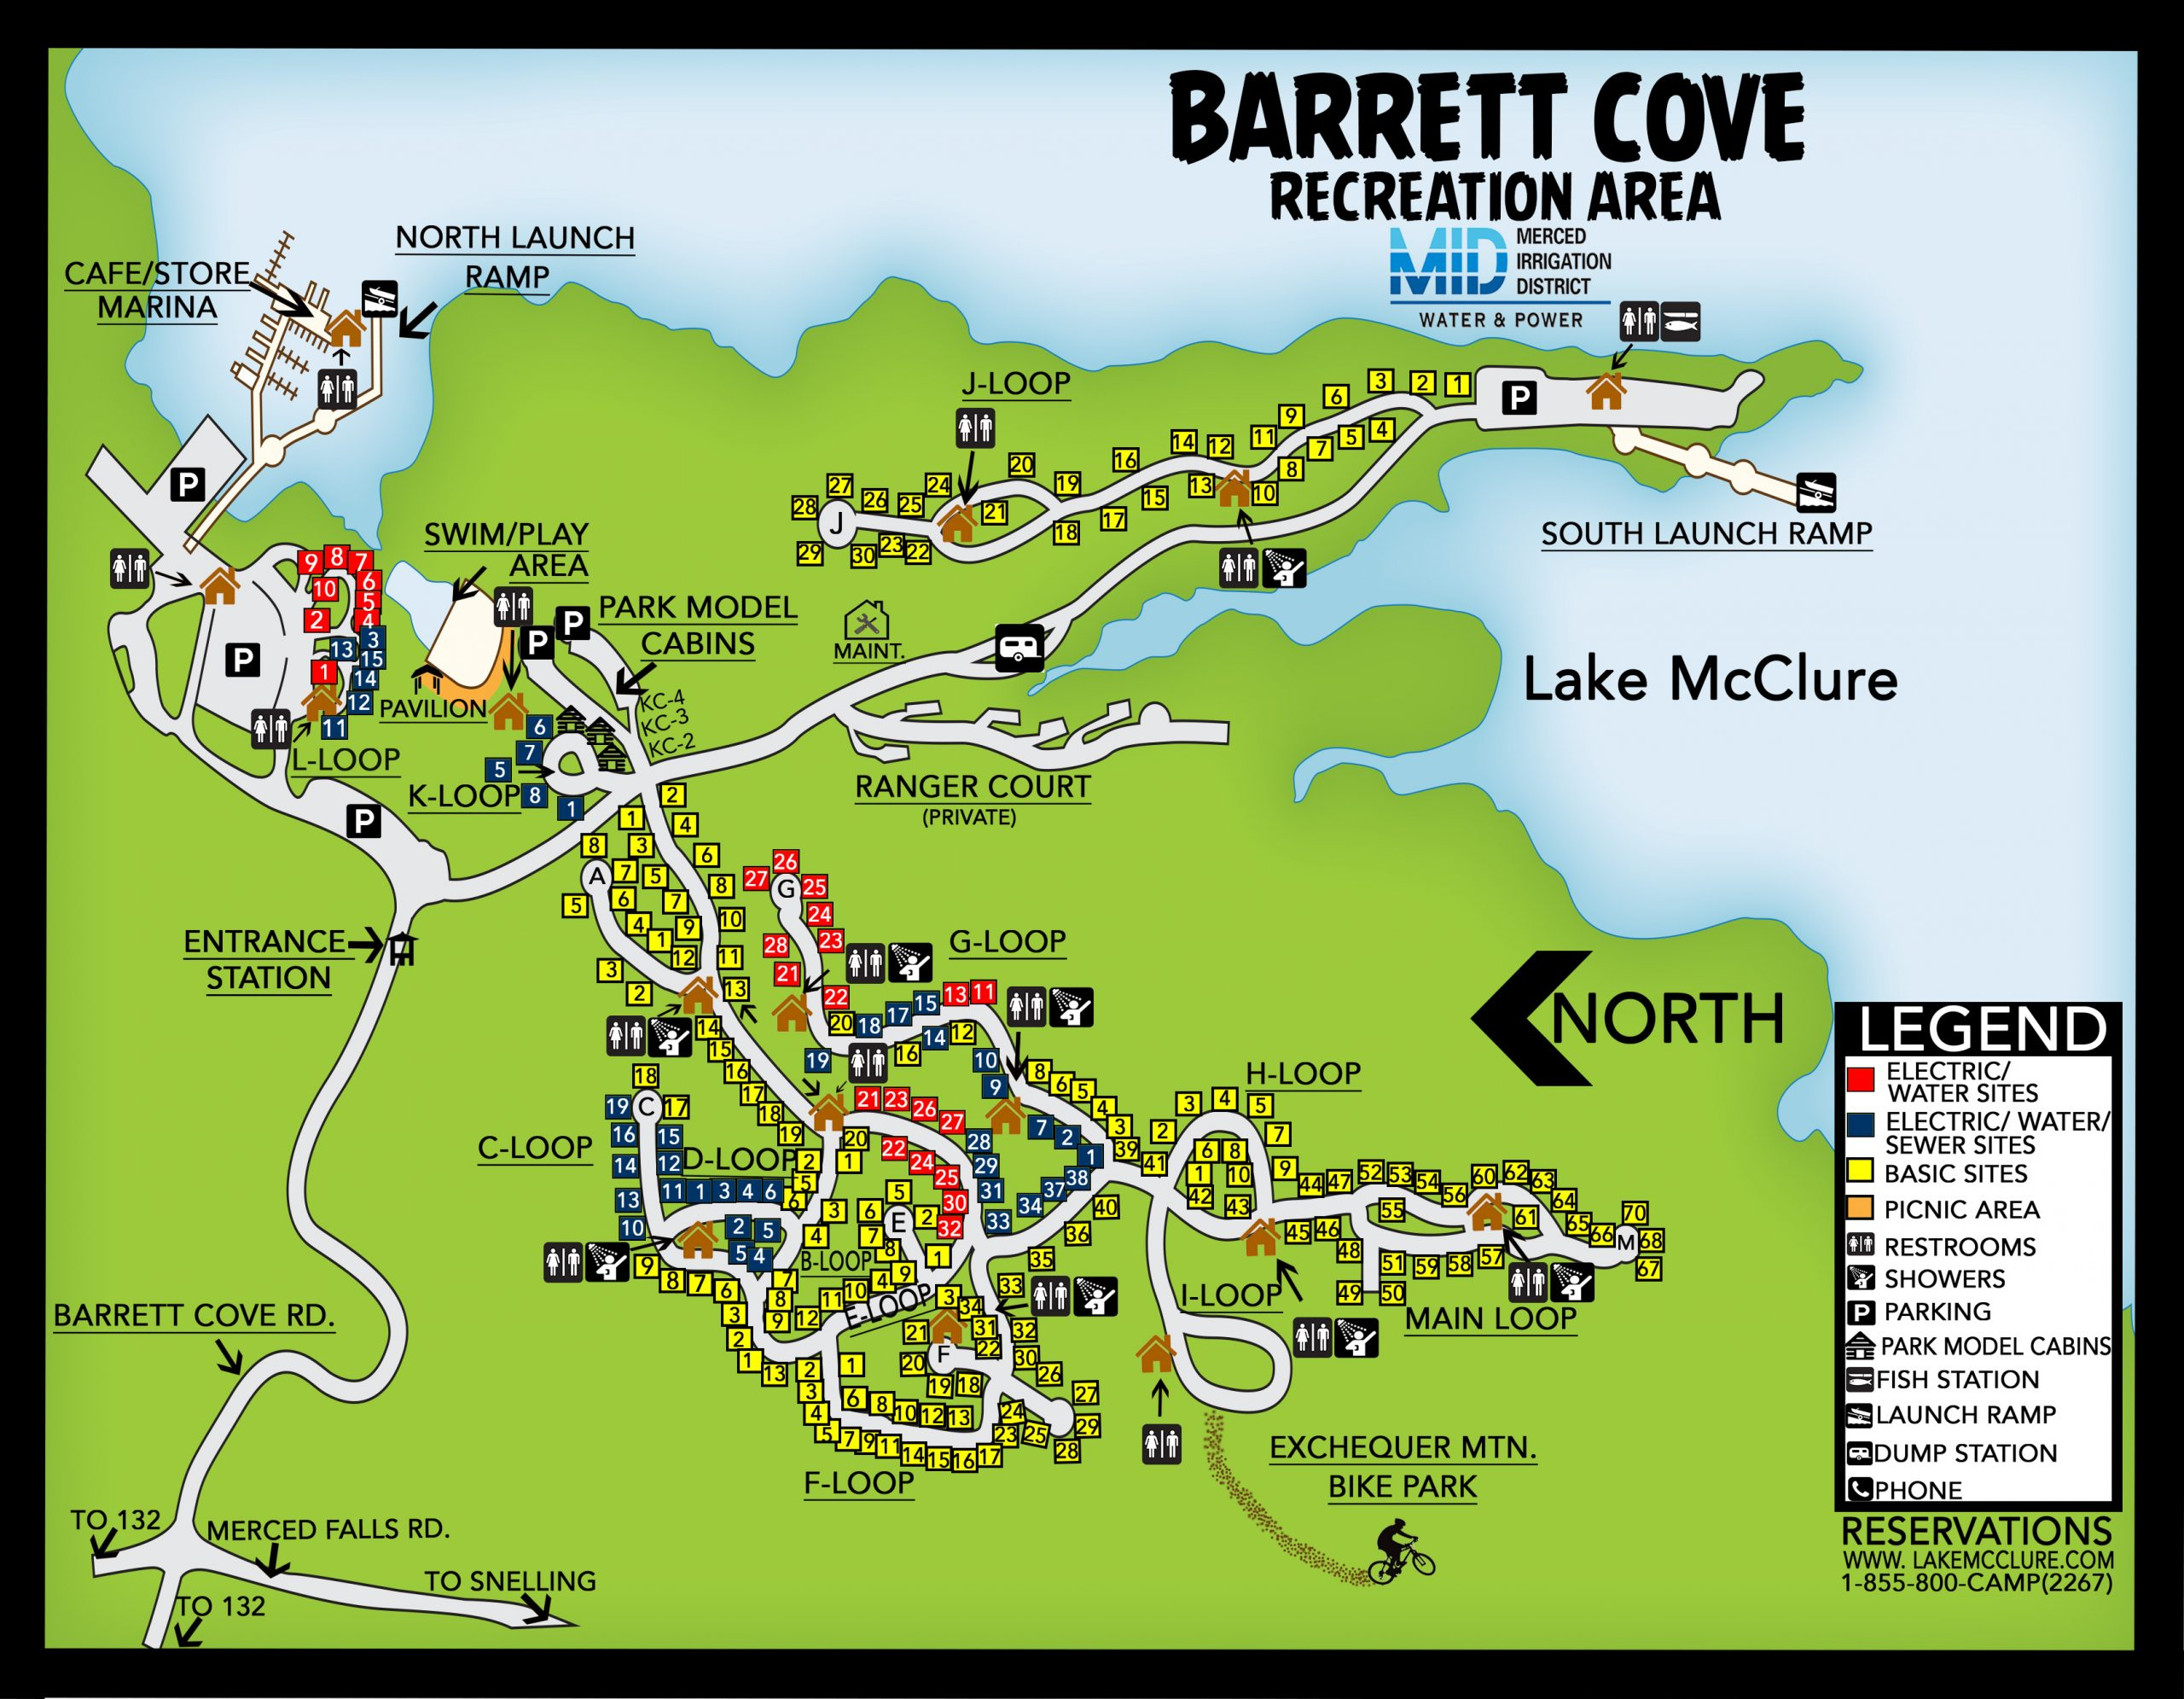 Barrett Cove Recreation Area